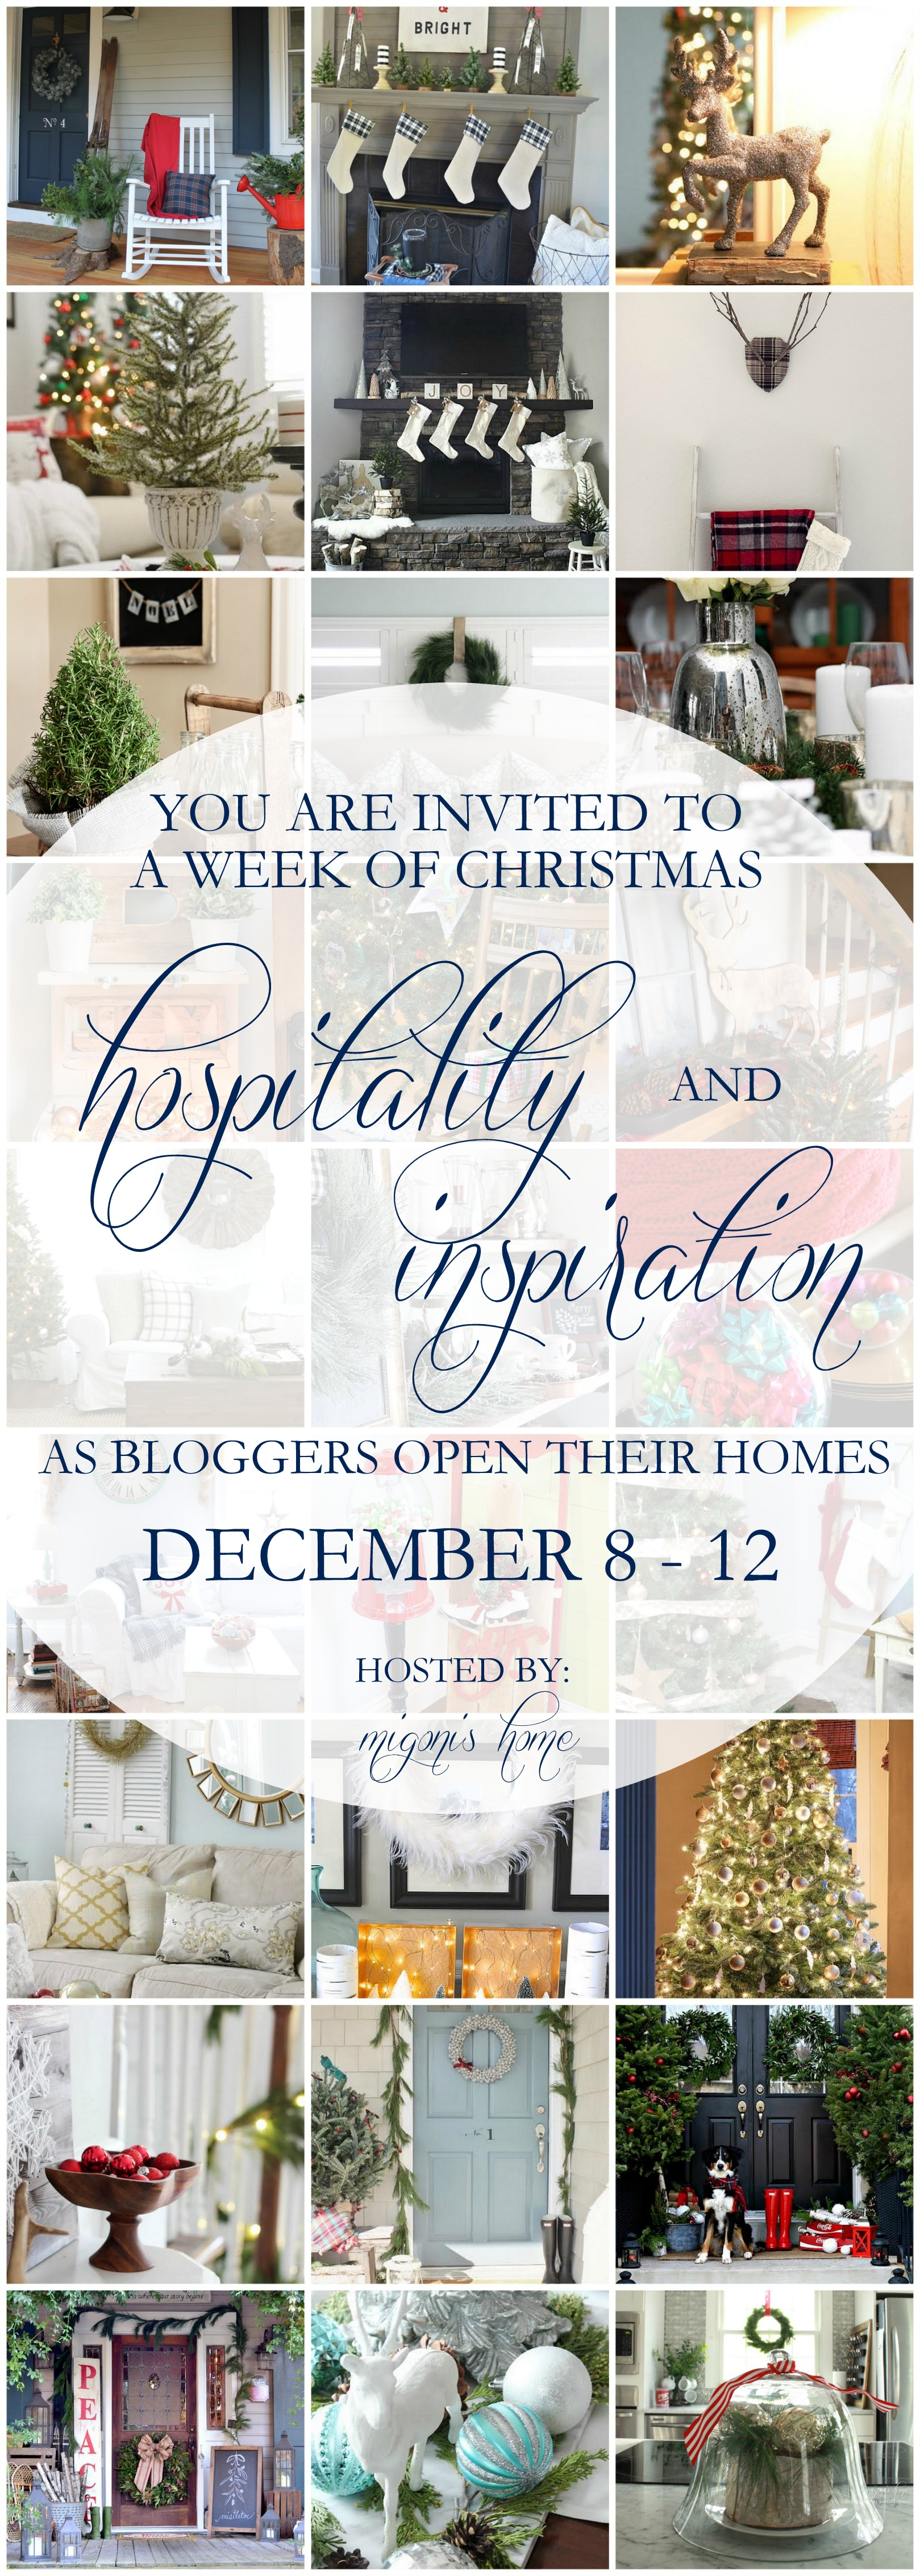 Come see 28 beautiful Christmas Home Tours! Lots of holiday hospitality and Christmas decorating inspiration! www.settingforfour.com